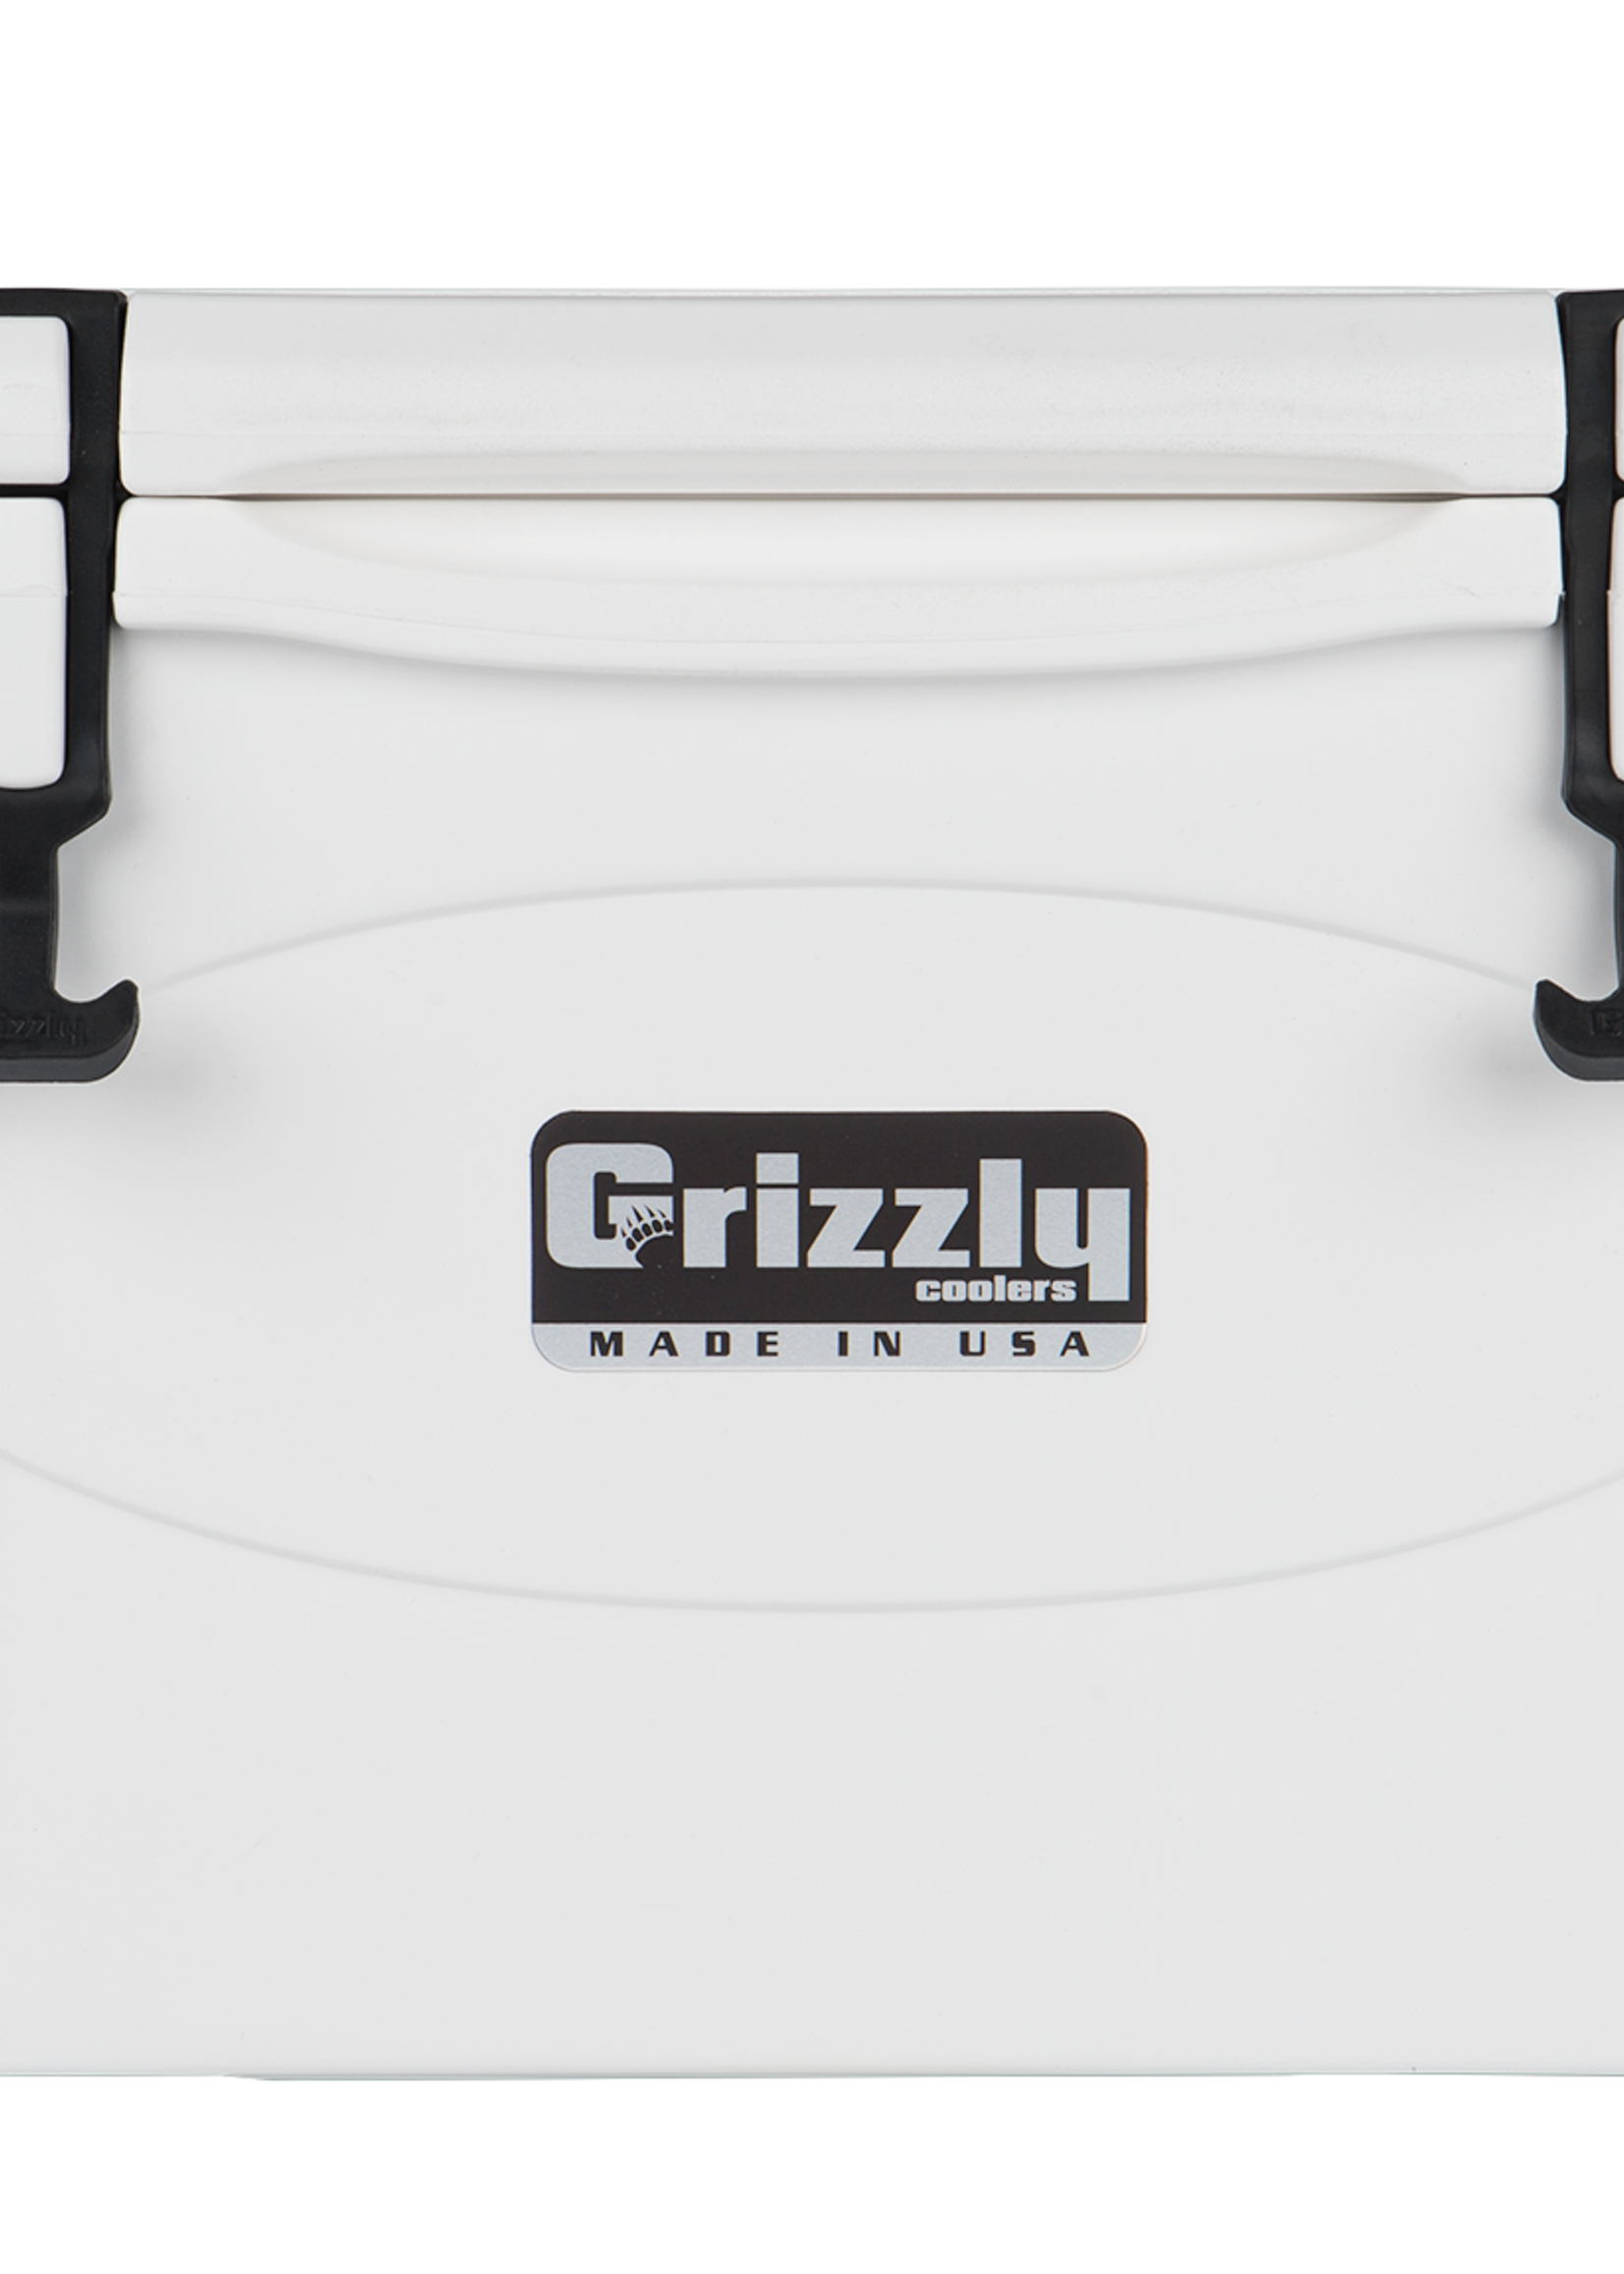 Grizzly Coolers Grizzly 40 Cooler